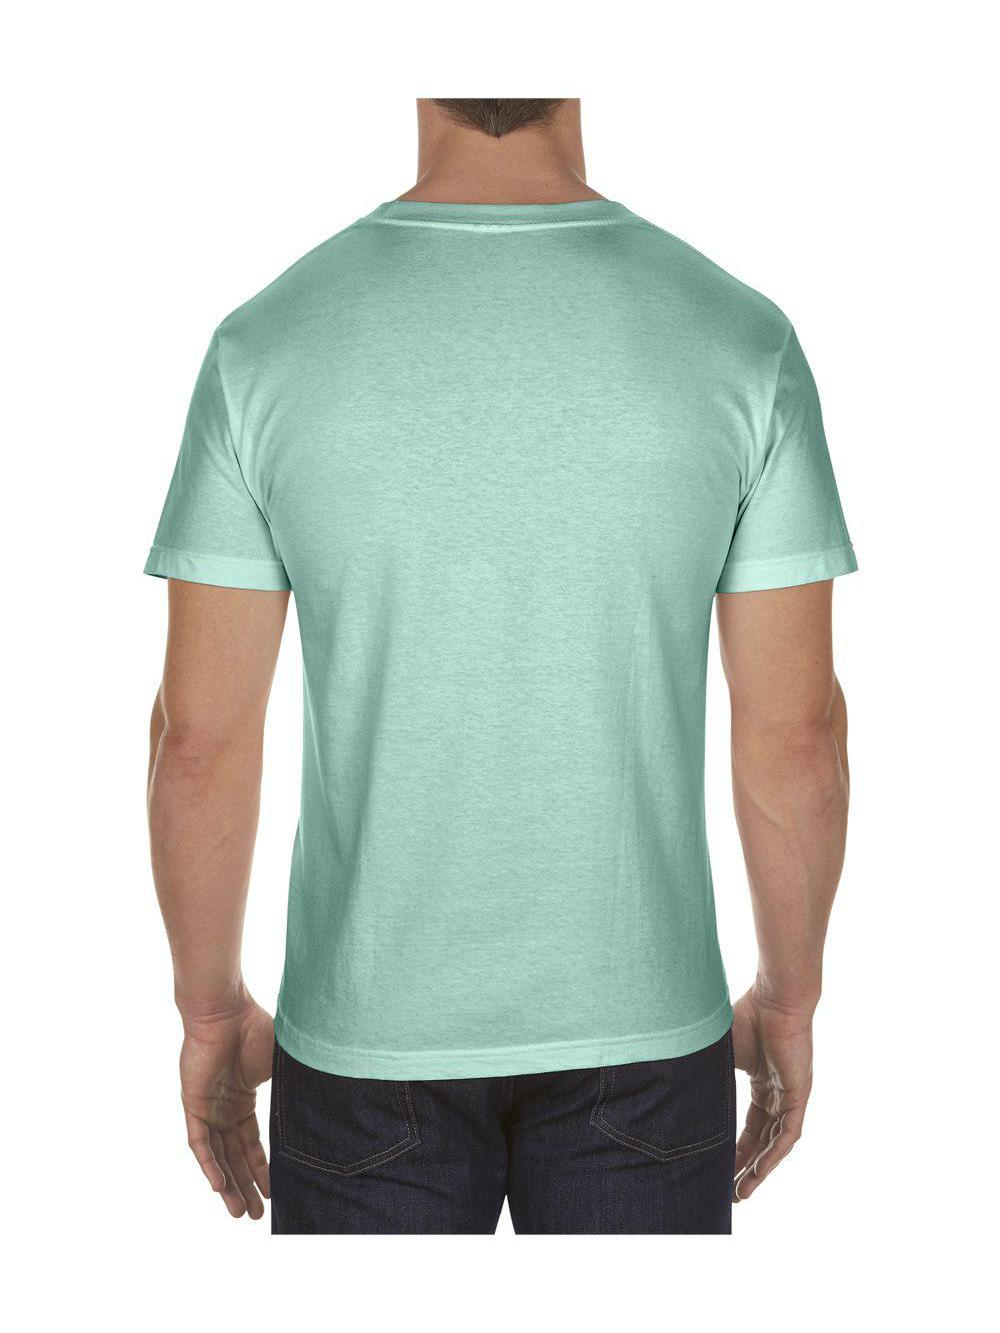 ALSTYLE-Classic-T-Shirt-1301 thumbnail 25